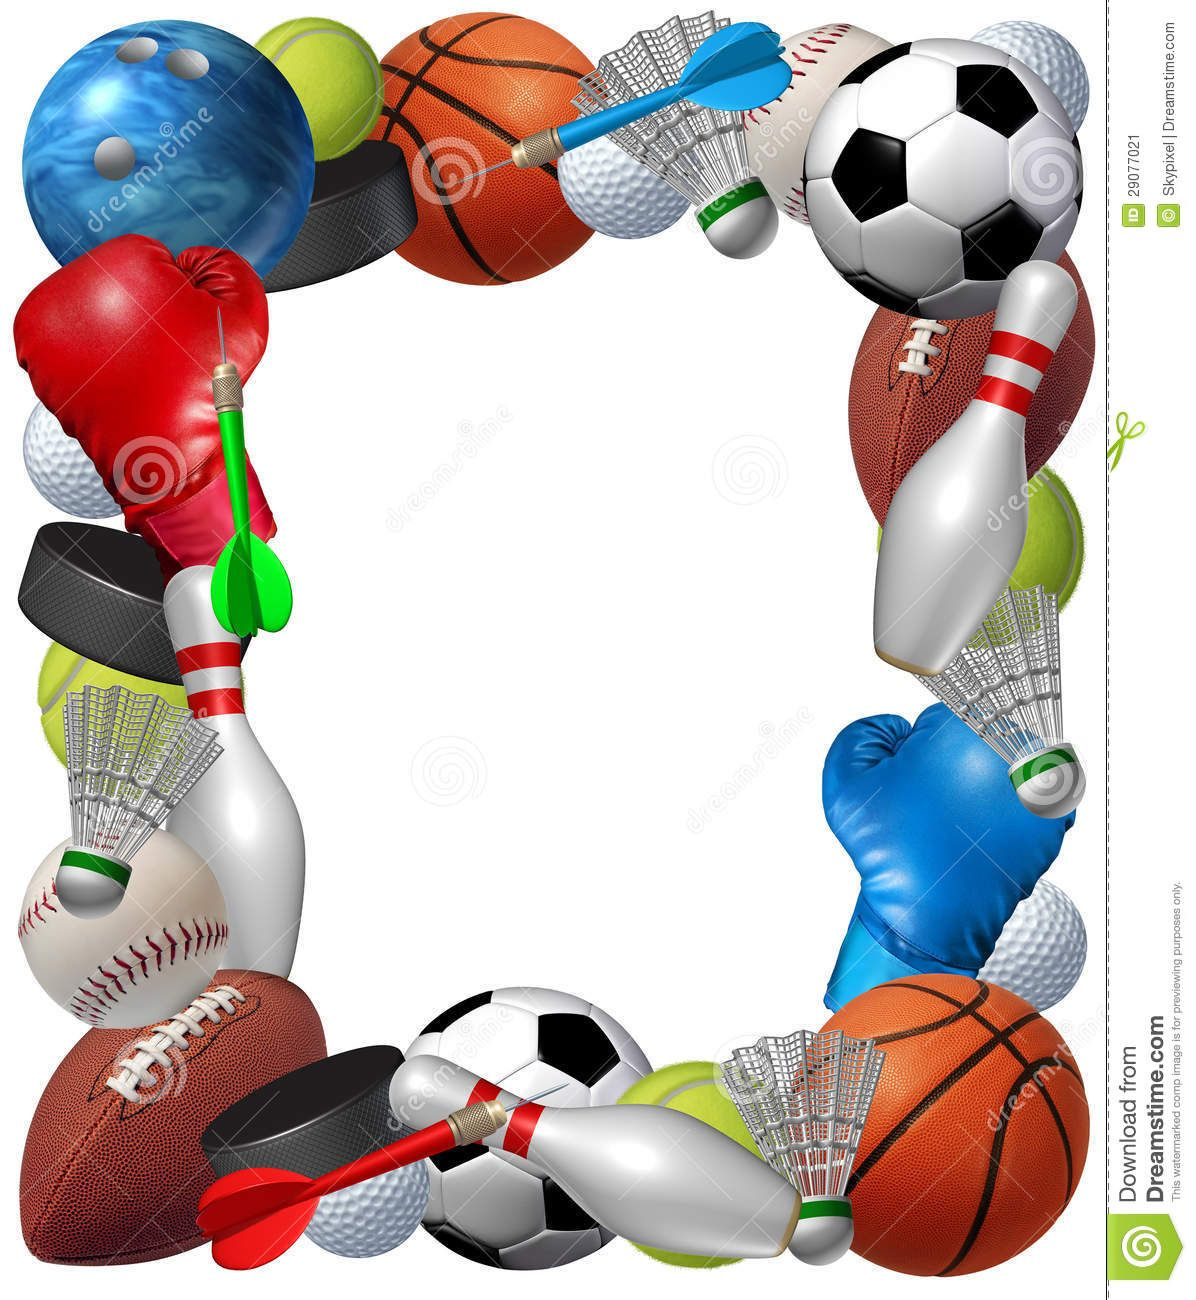 55 Awesome sports themed border clip art.